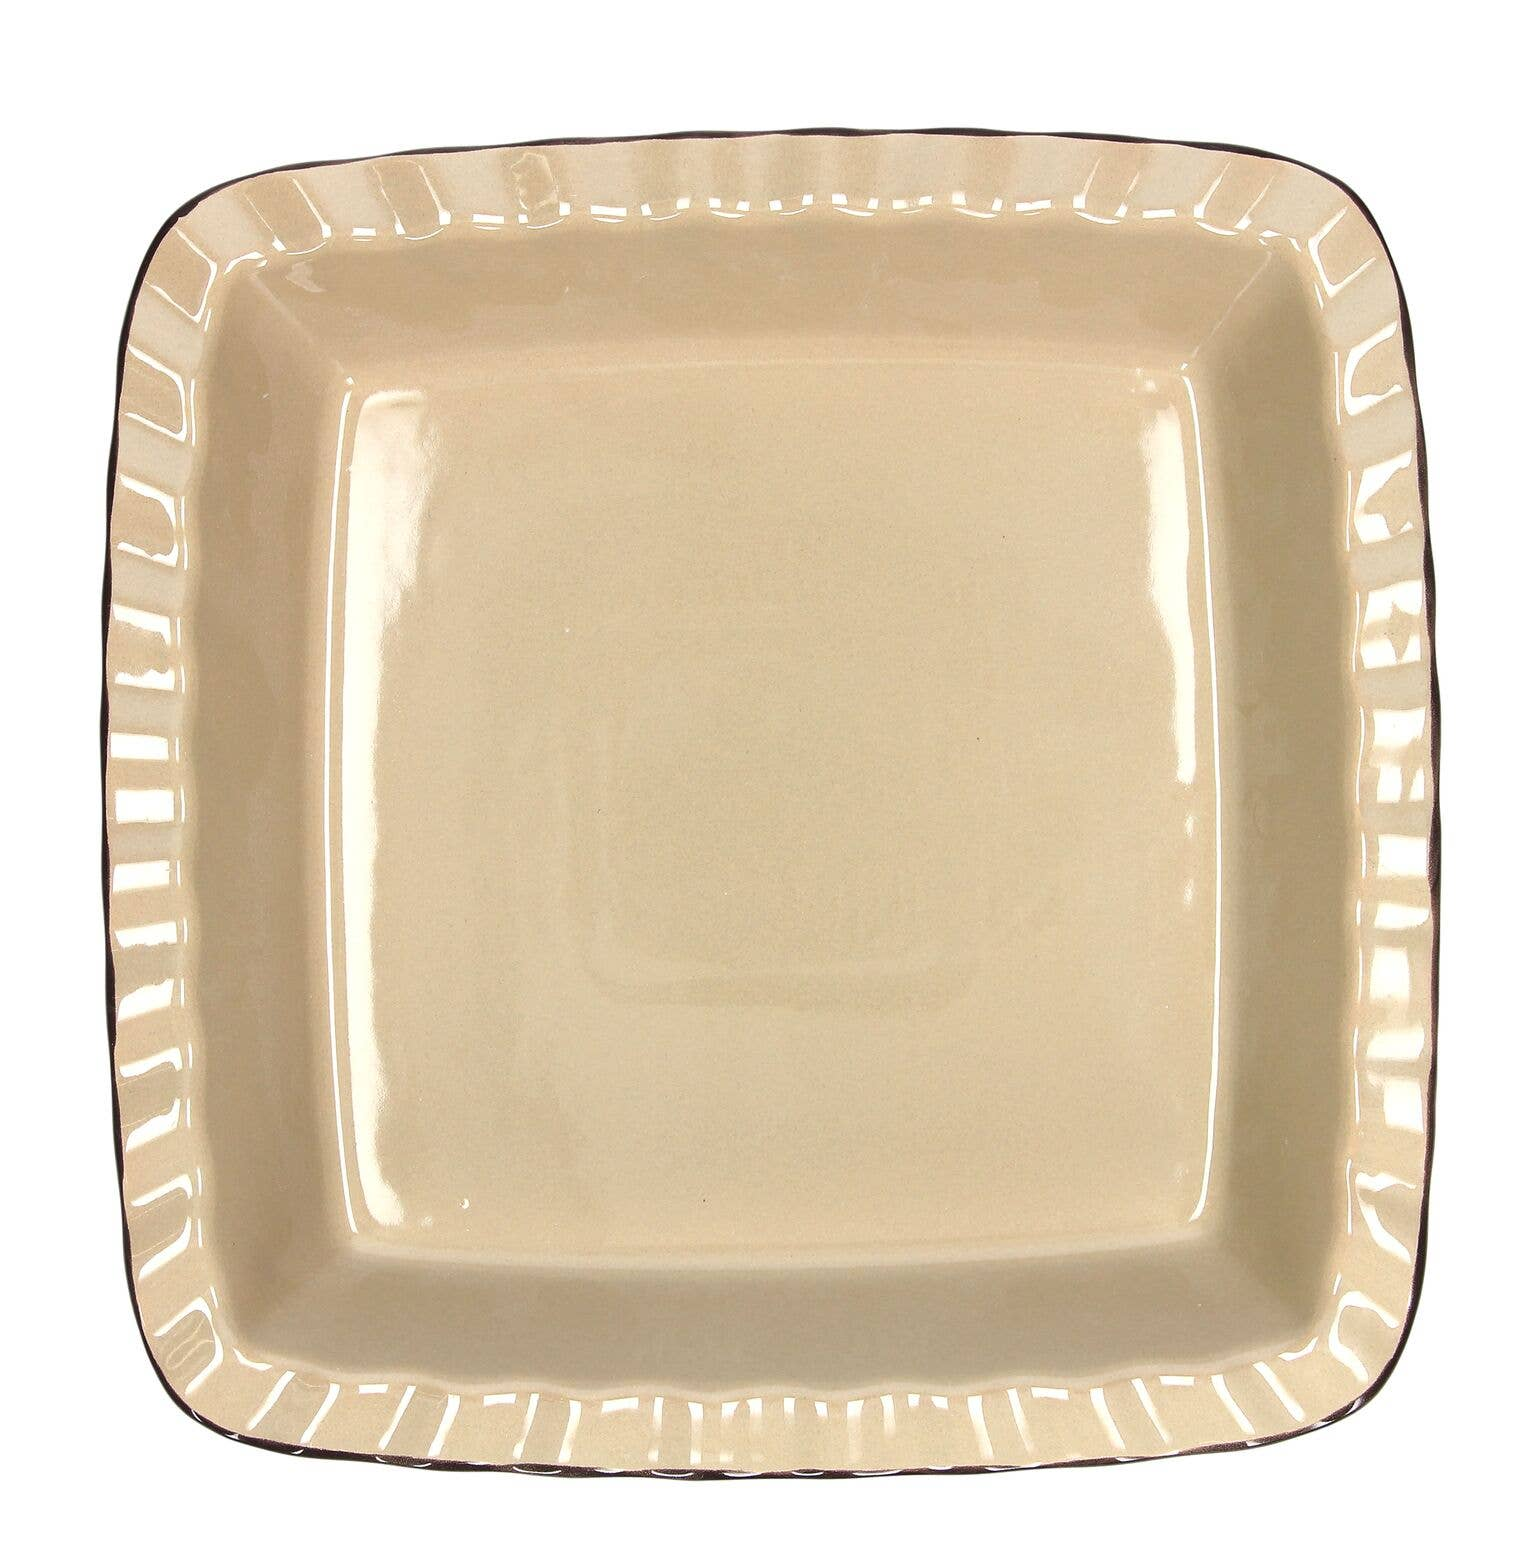 """10"""" Square Country Cook Baking Dish   Trada Marketplace"""